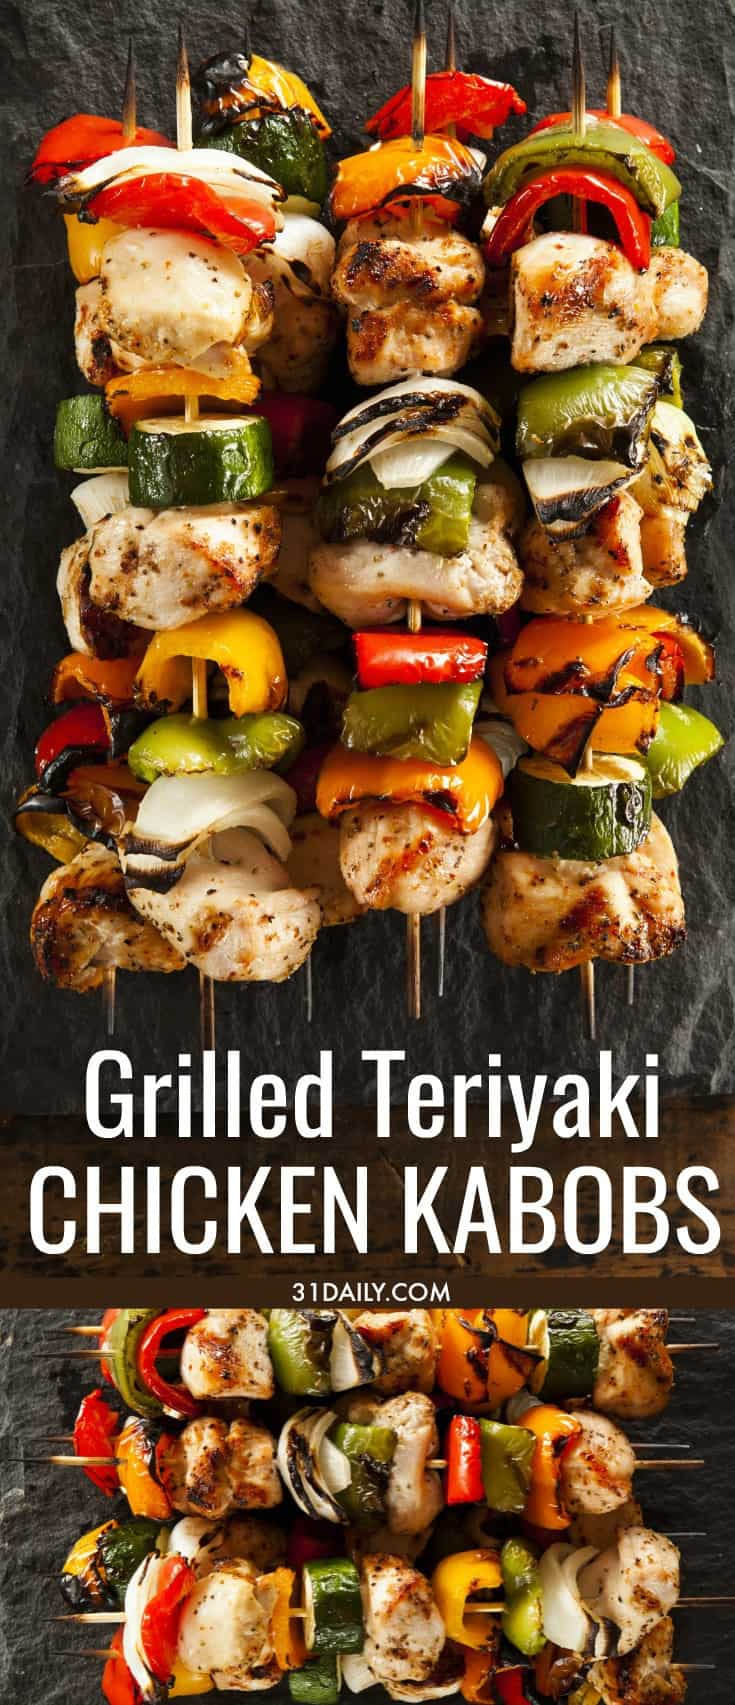 Grilled Teriyaki Chicken Kabobs | 31Daily.com